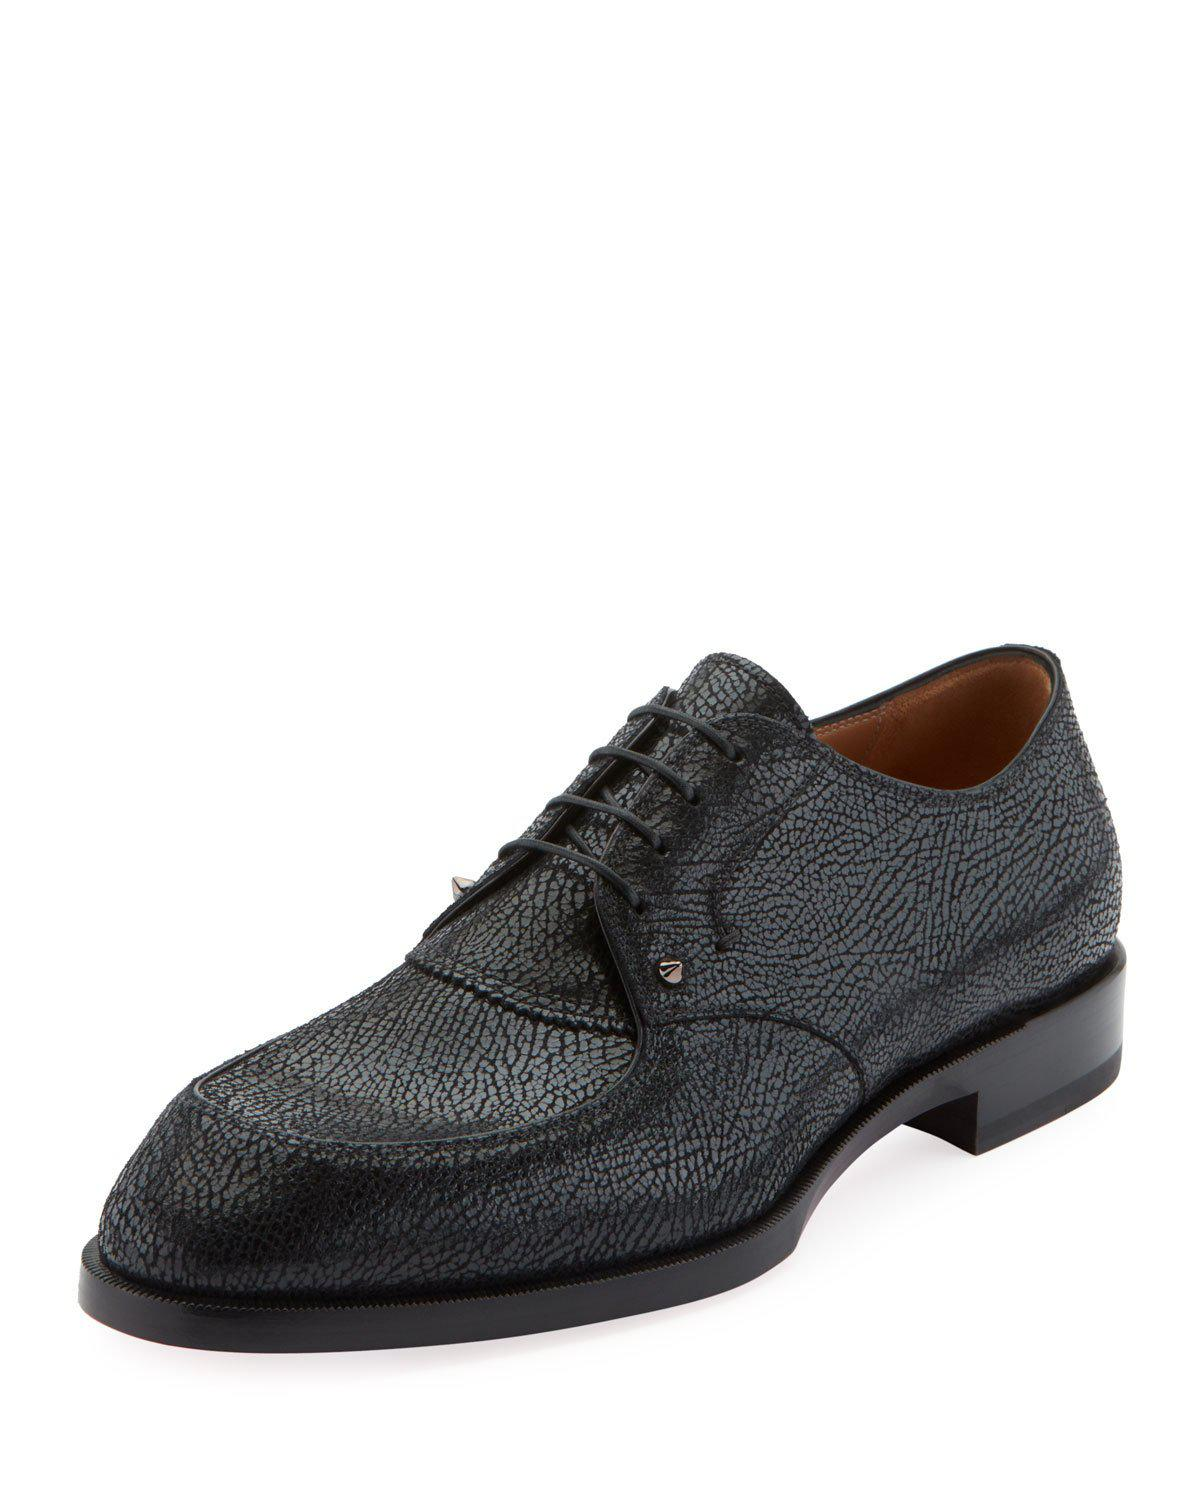 Christian Louboutin Men's Thomas Iii Textured Leather Lace-Up Shoes In Black